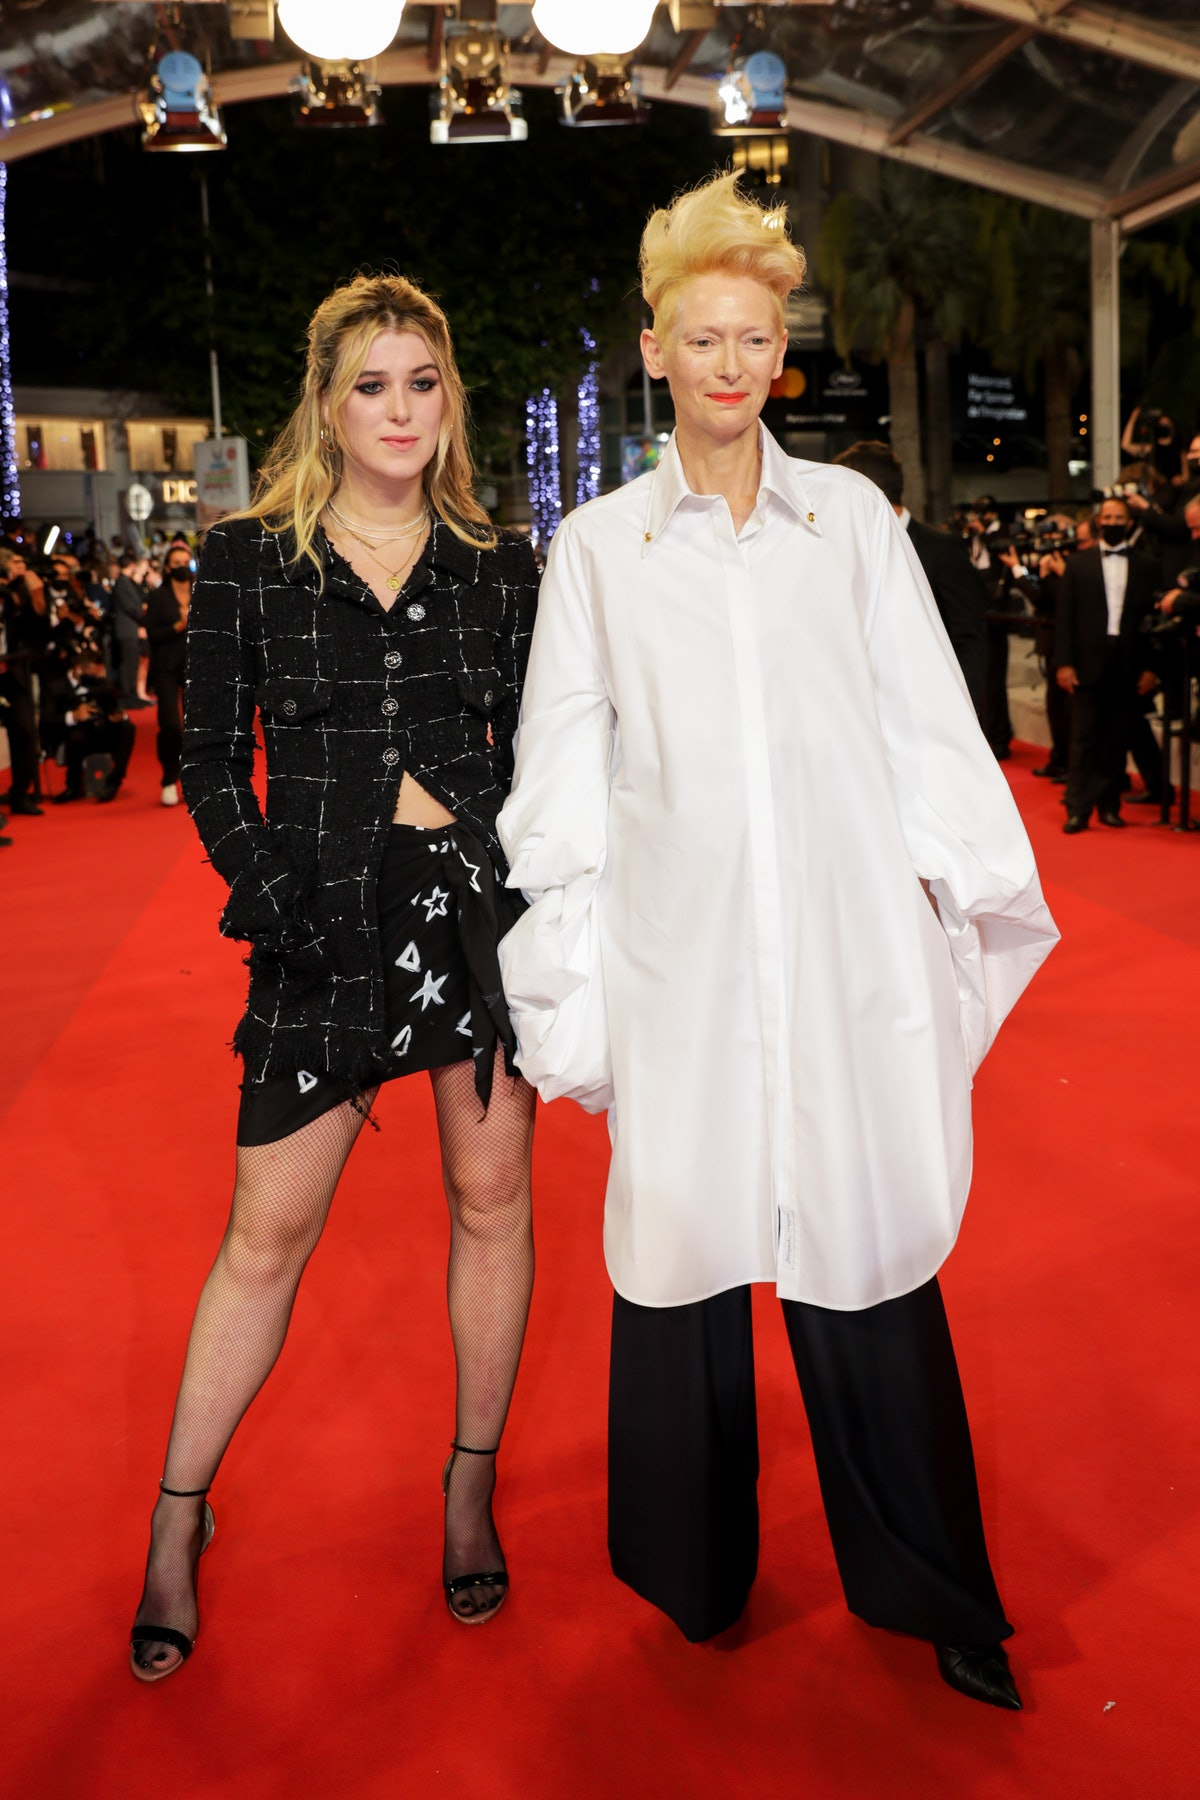 Honor and Tilda on the carpet